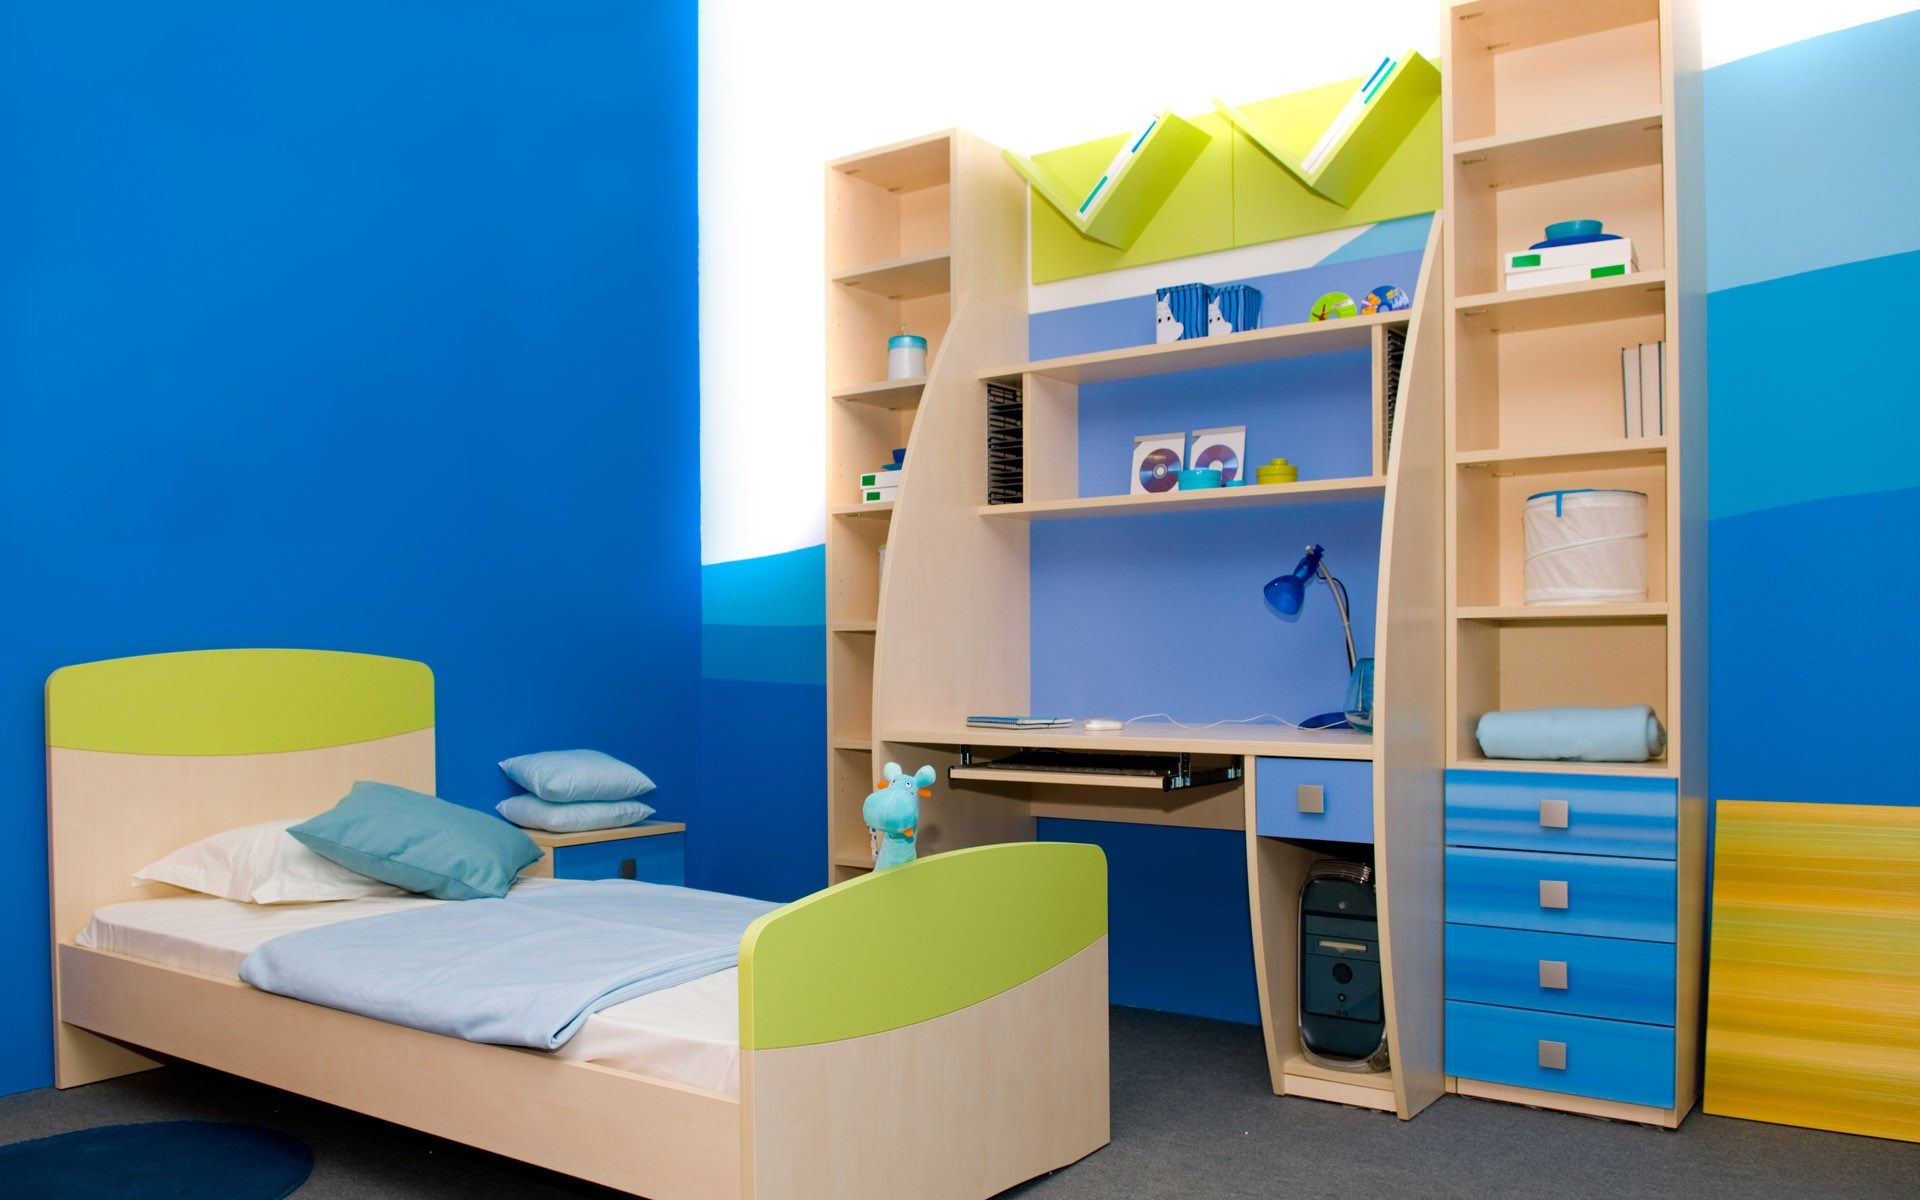 7 Tips For Decorating Your Kids Bedroom Splendidly  Do